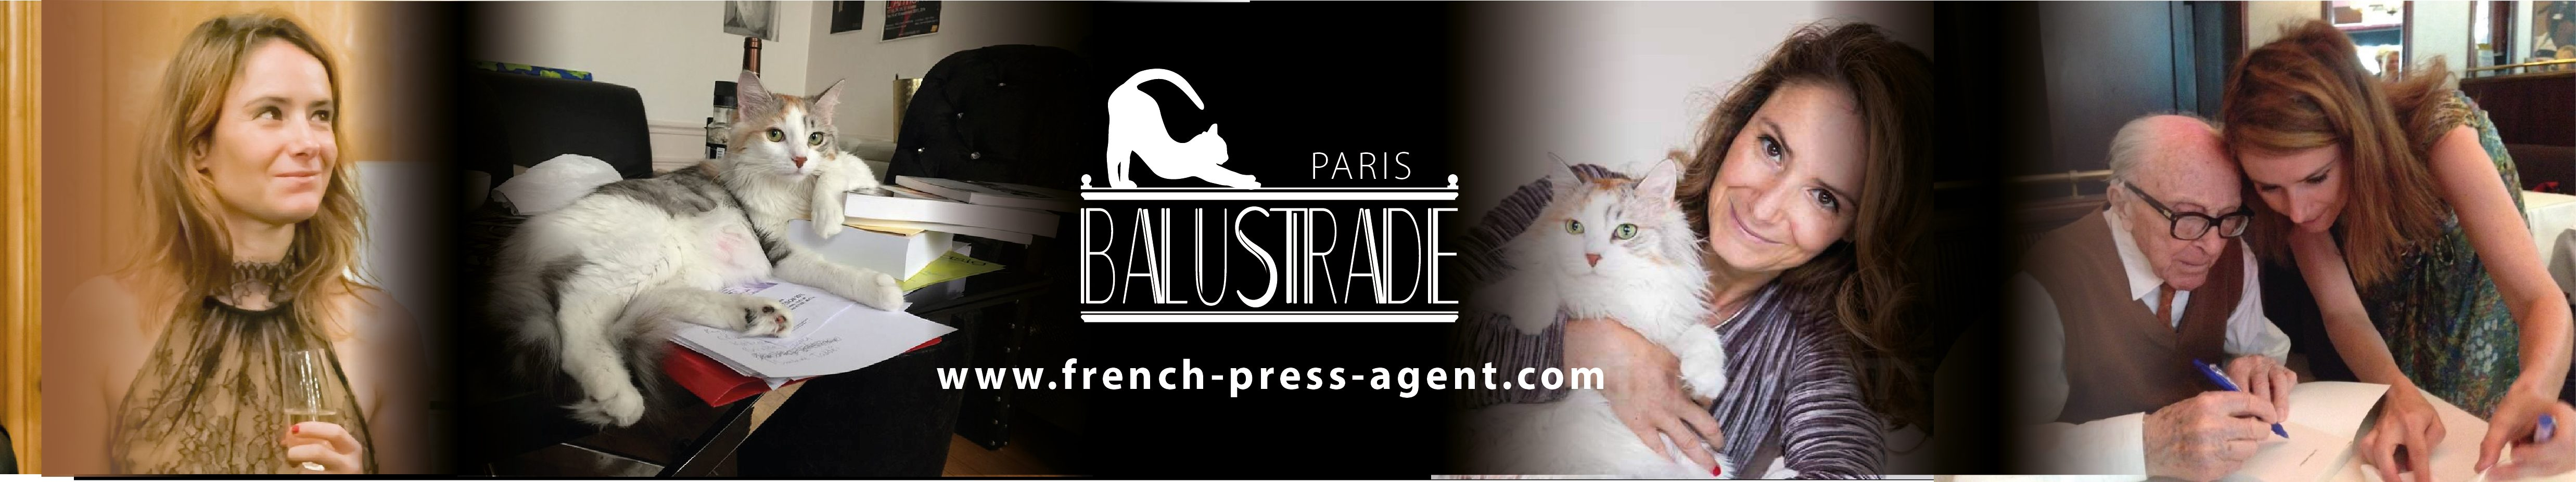 French Press Agent Guilaine Depis (Balustrade PR and media relations for foreign customers) Paris